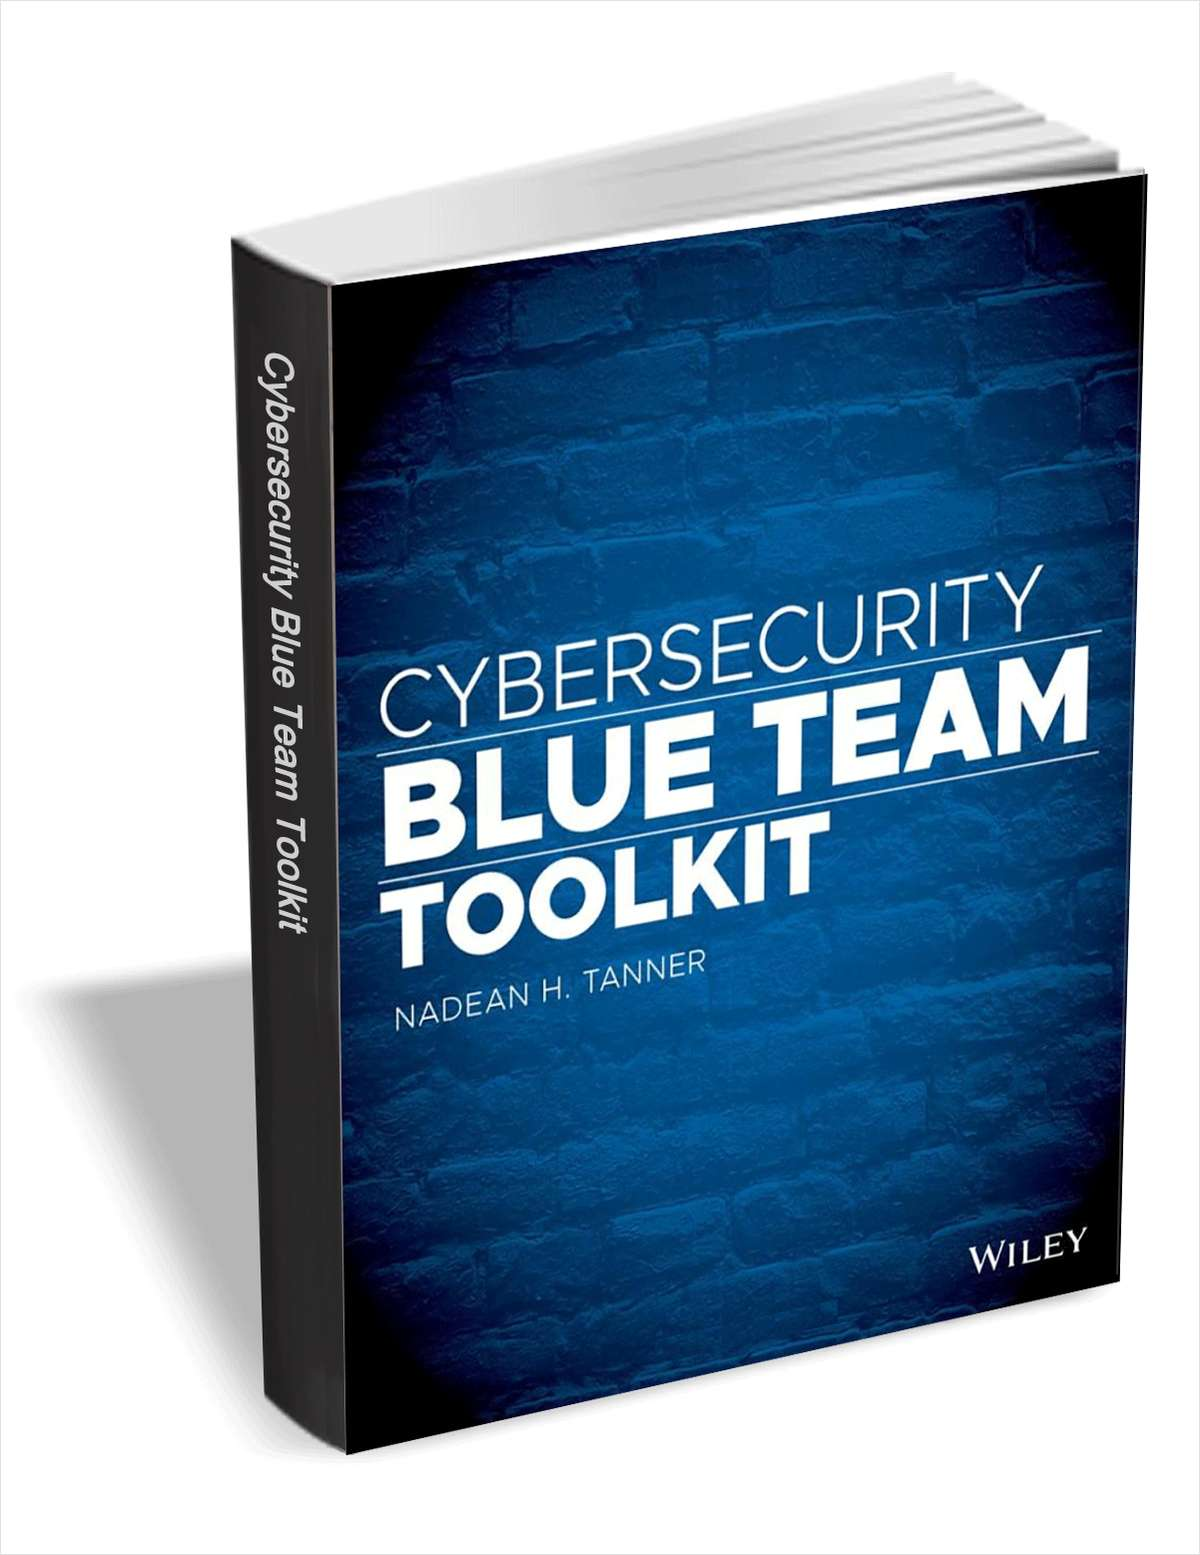 Cybersecurity Blue Team Toolkit ($26.99 Value) FREE for a Limited Time